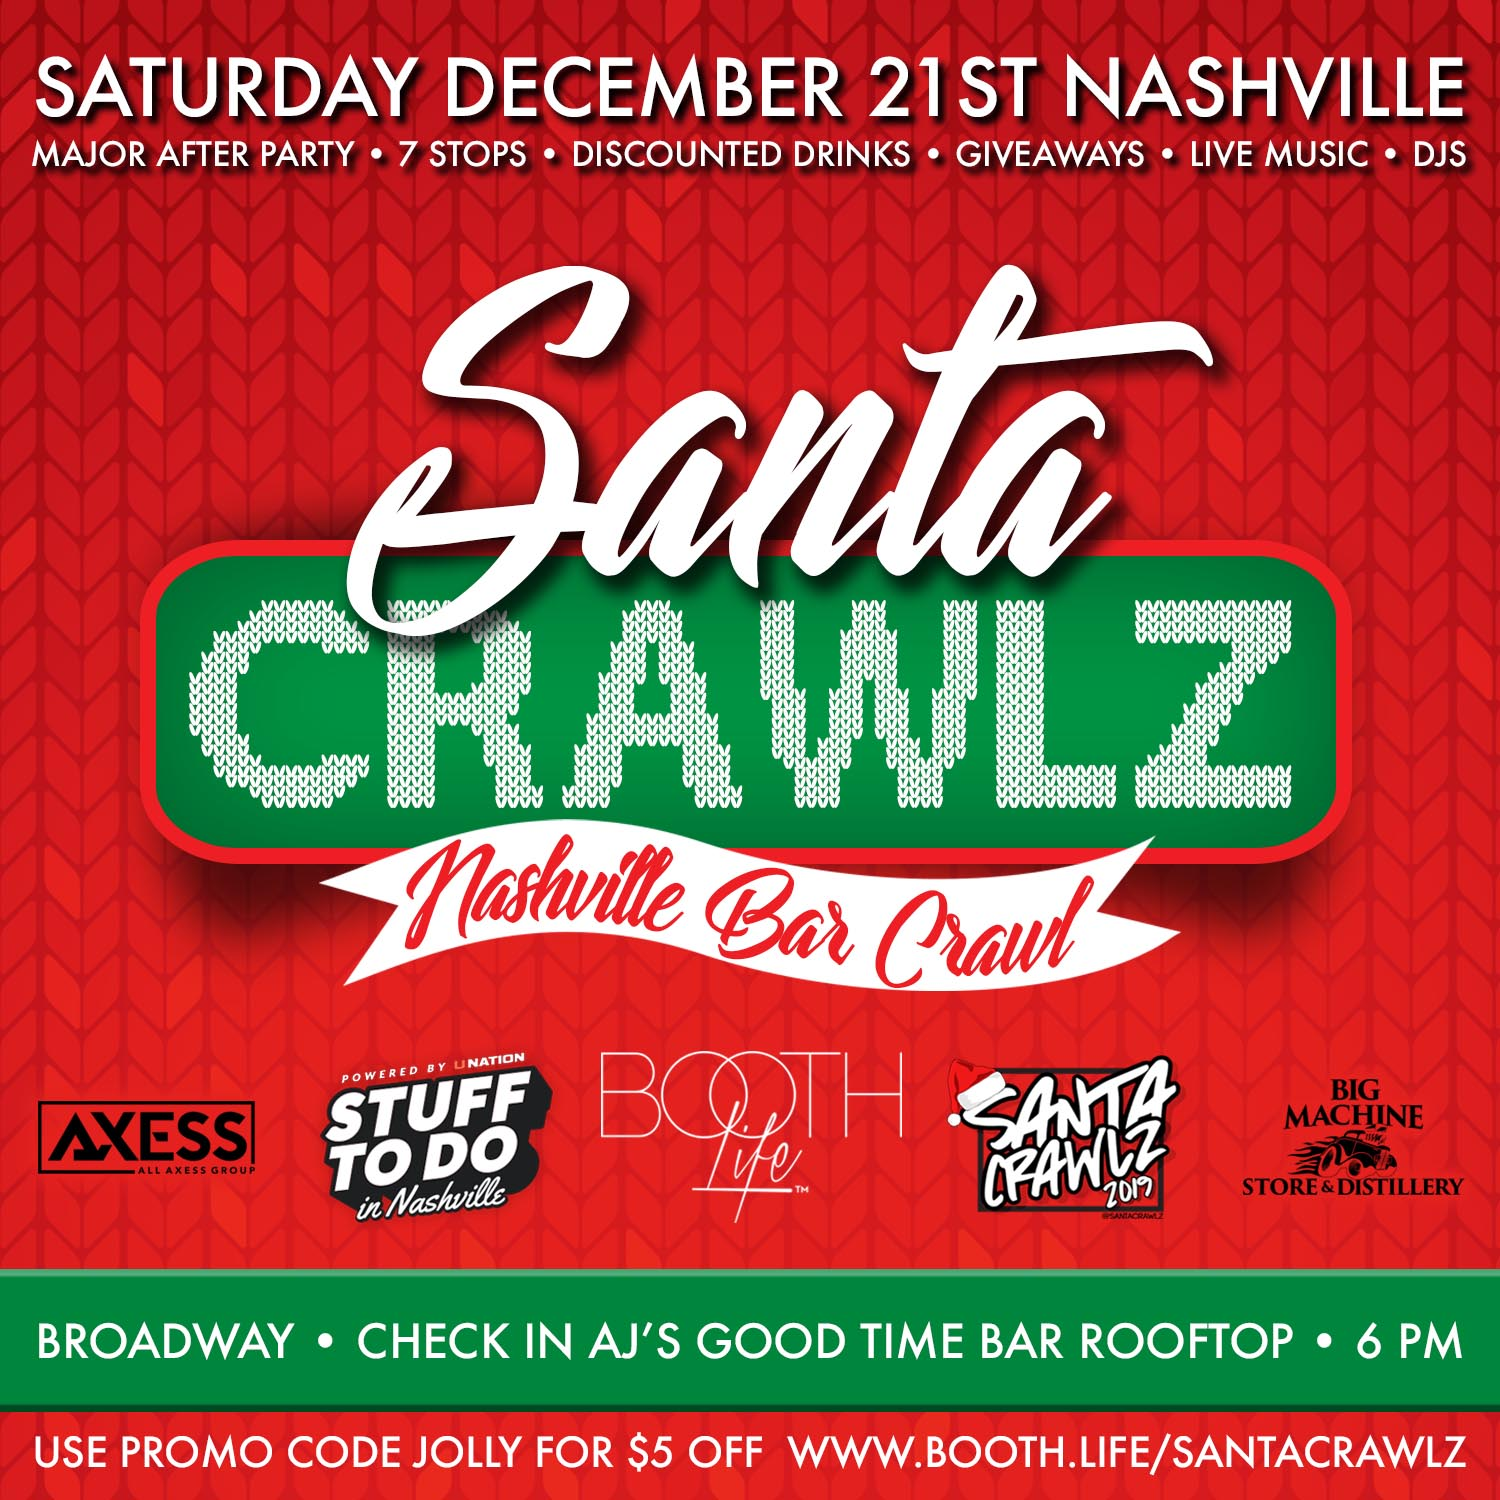 White Claw Santa Bar Crawl